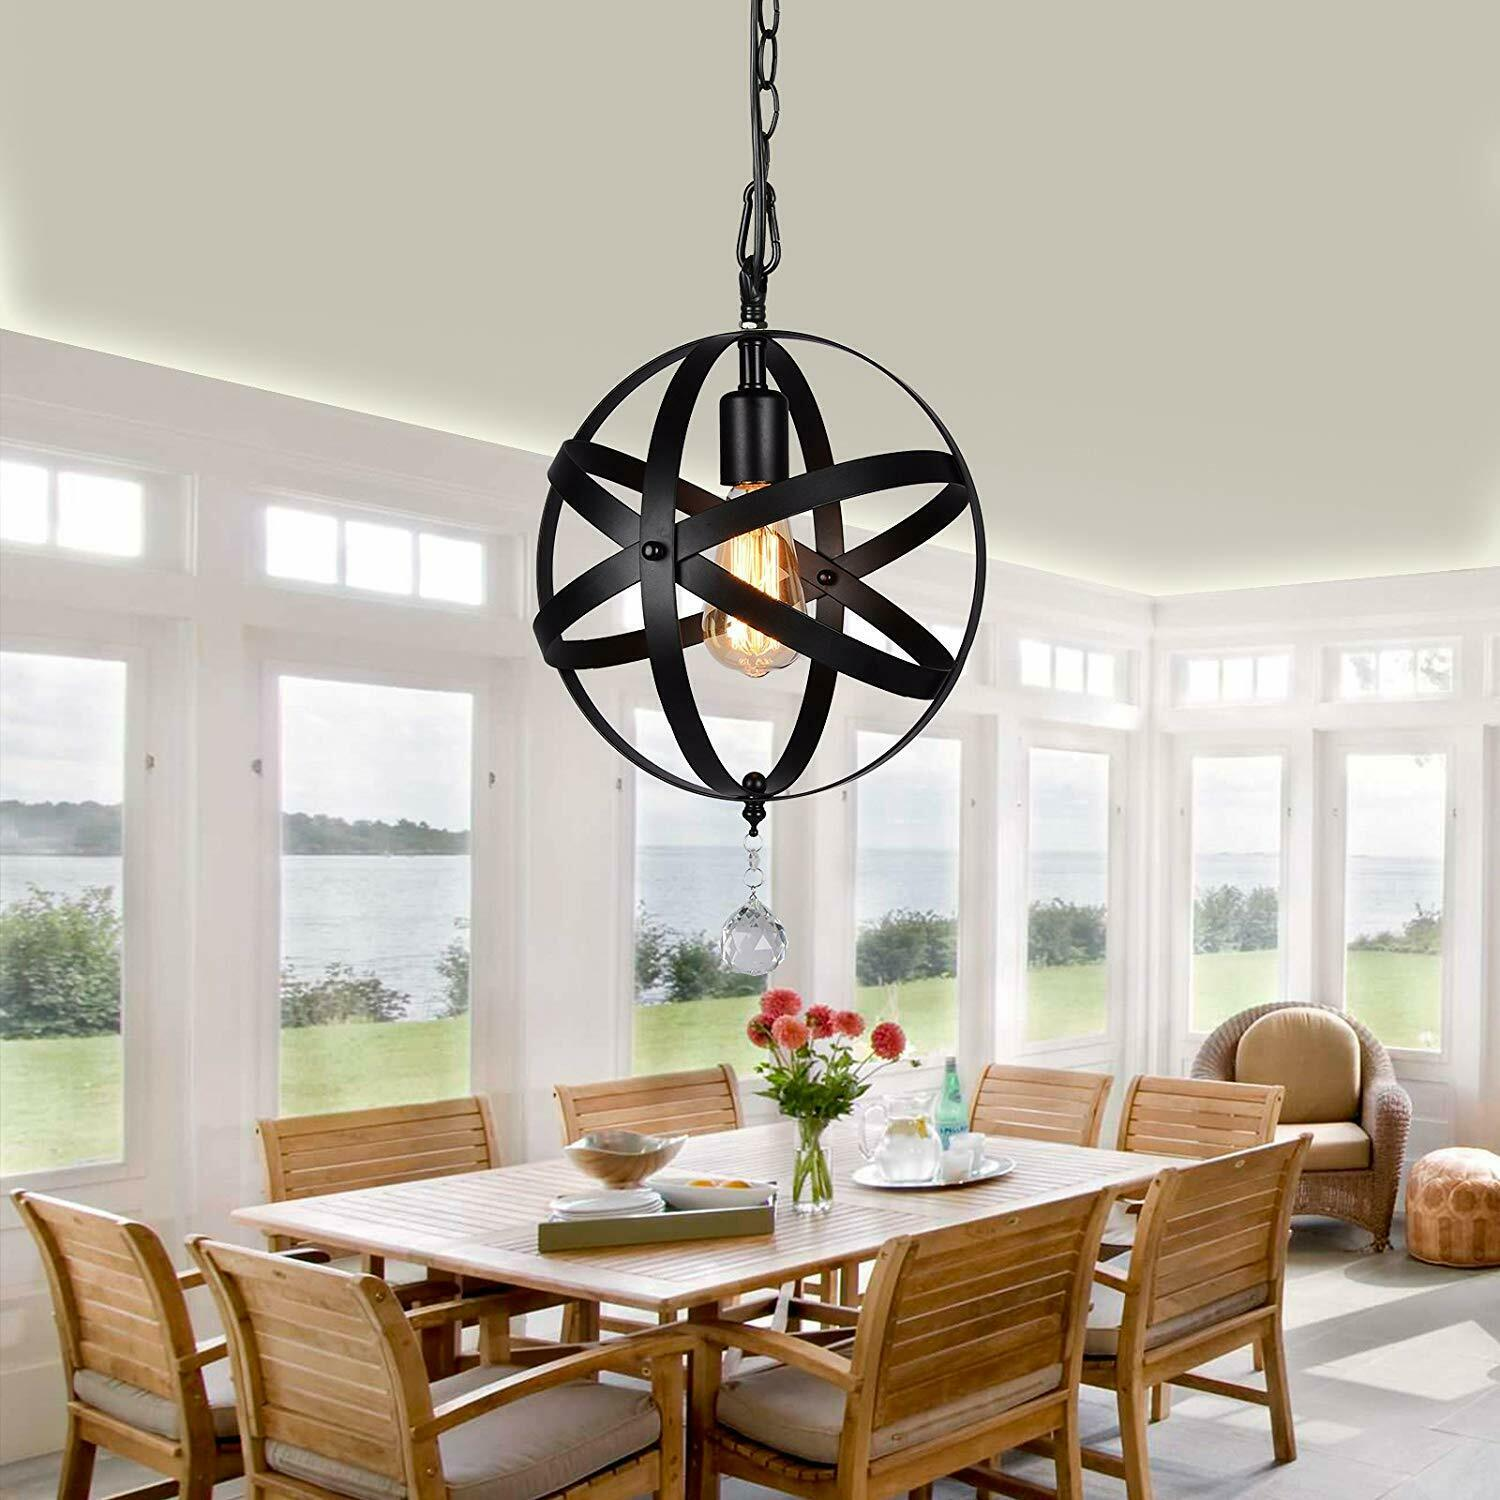 Dining Room Orb Pendant Hanging